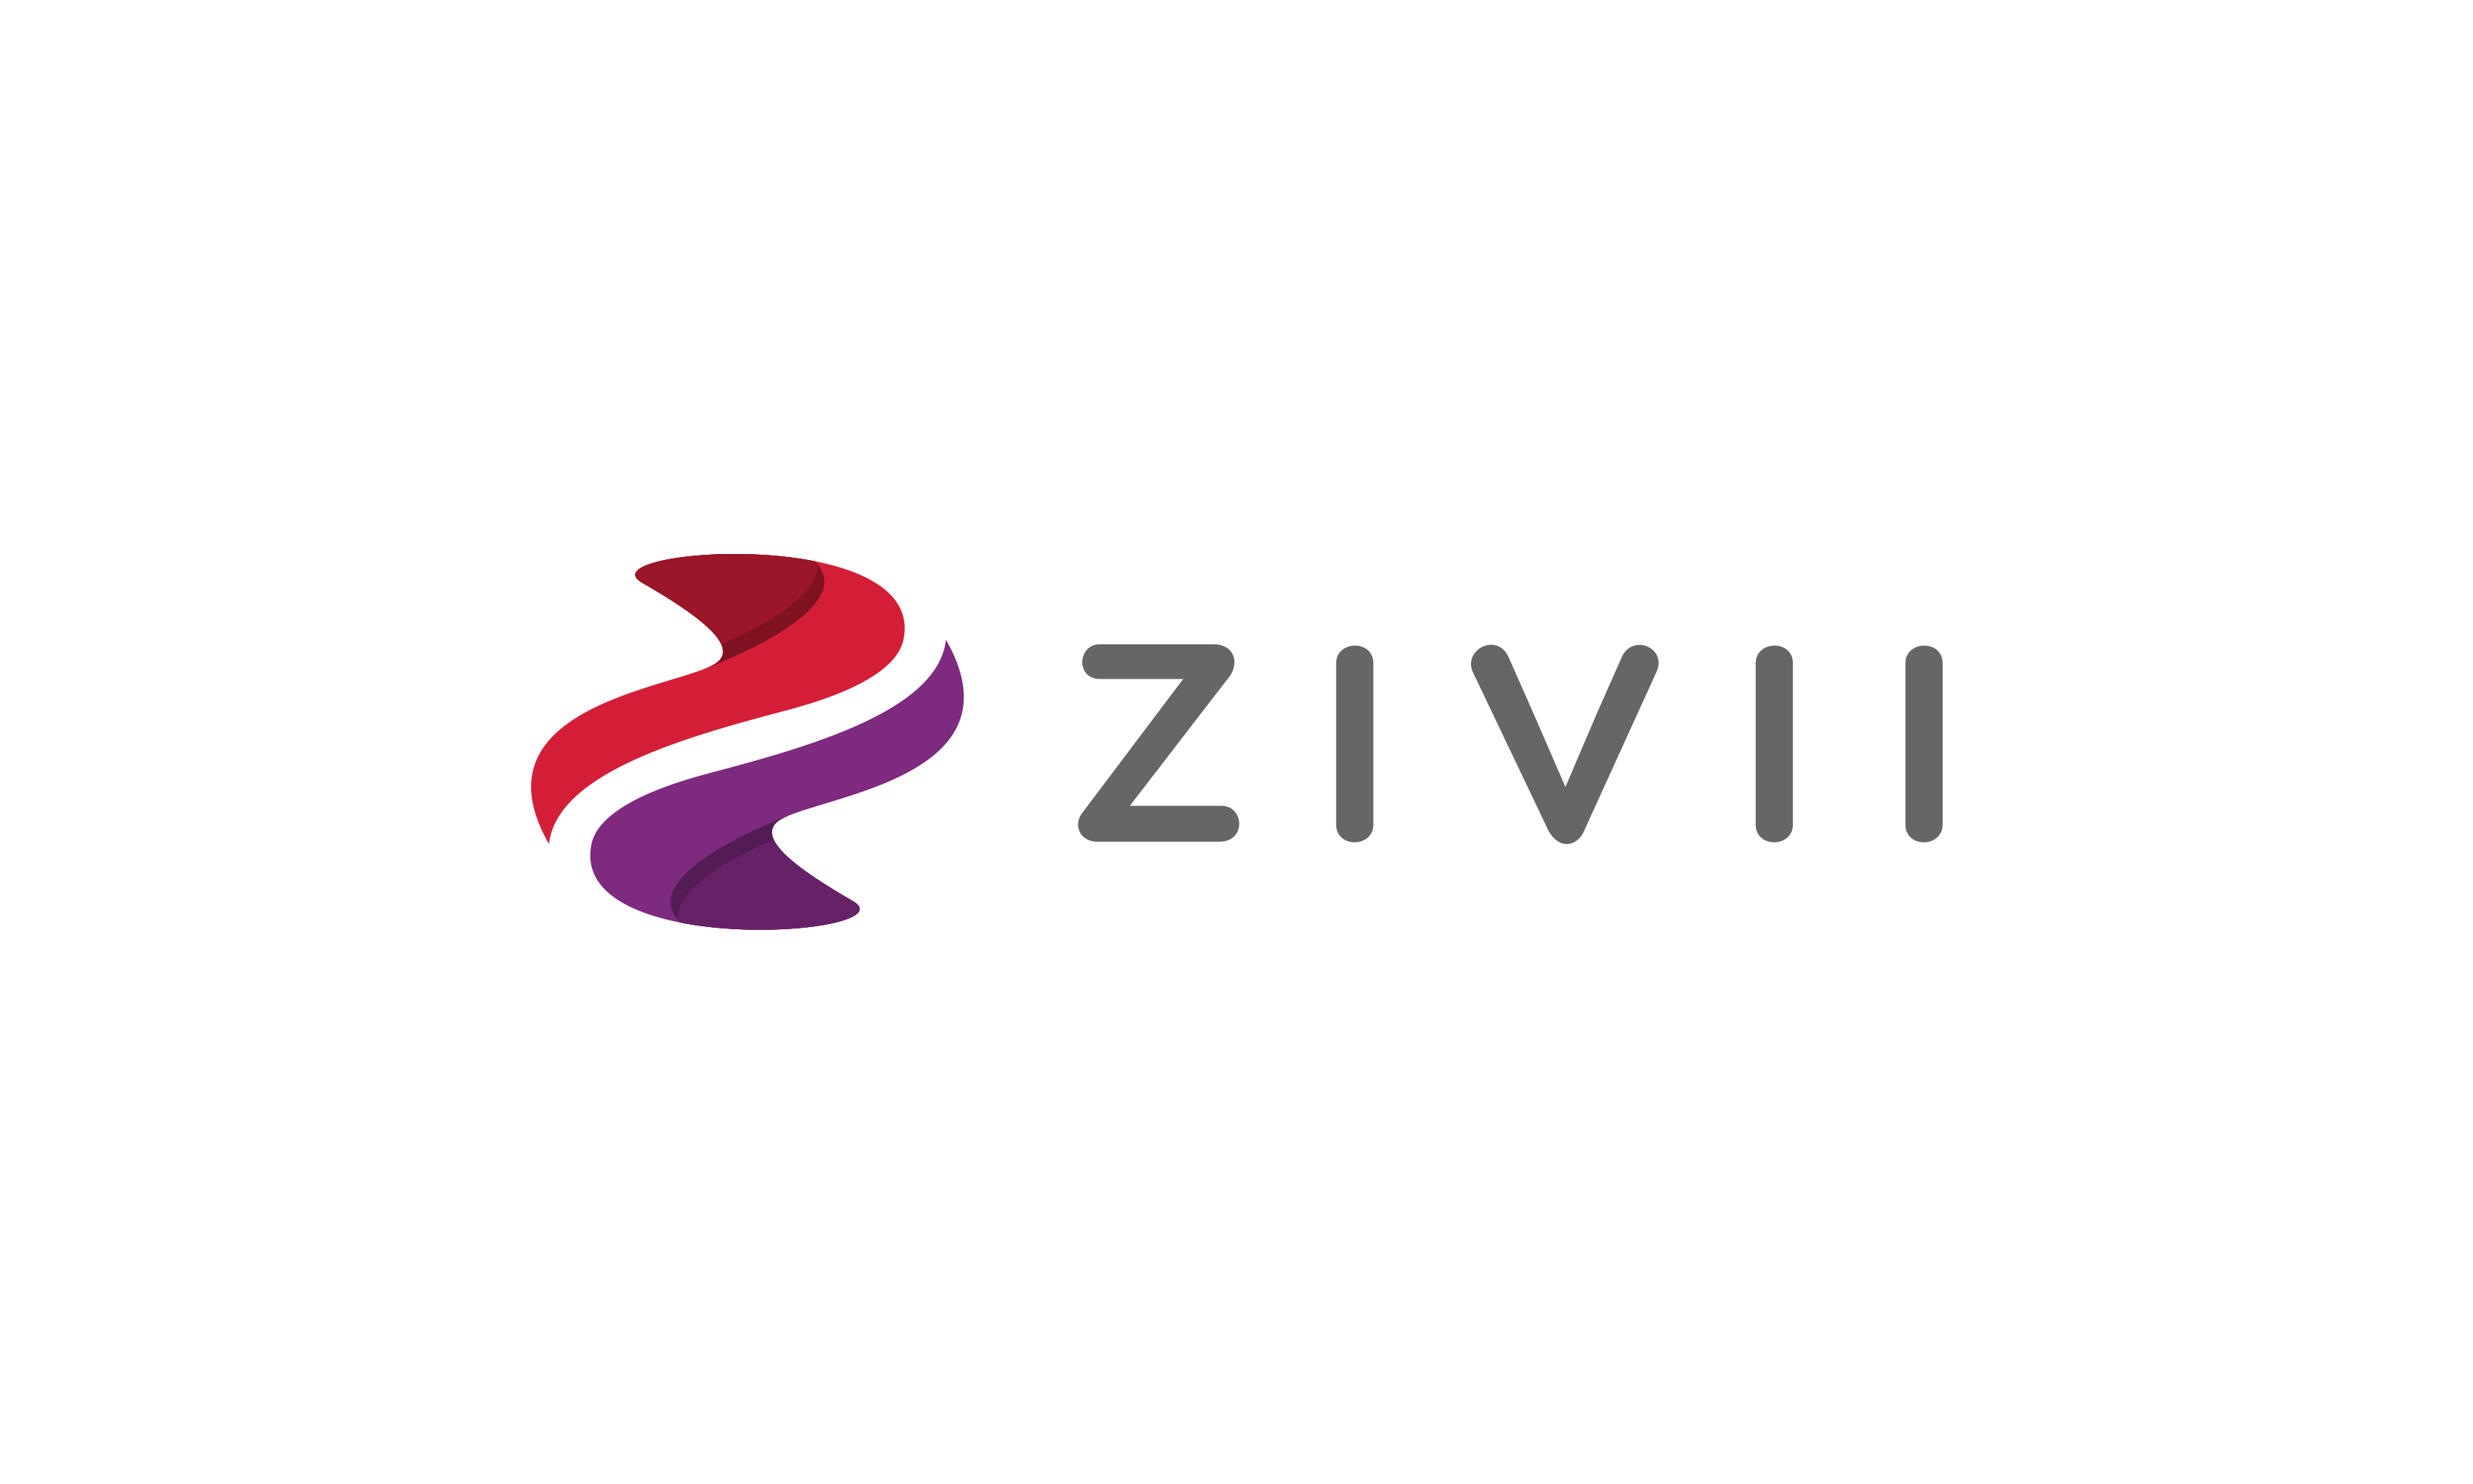 Zivii - Business domain name for sale